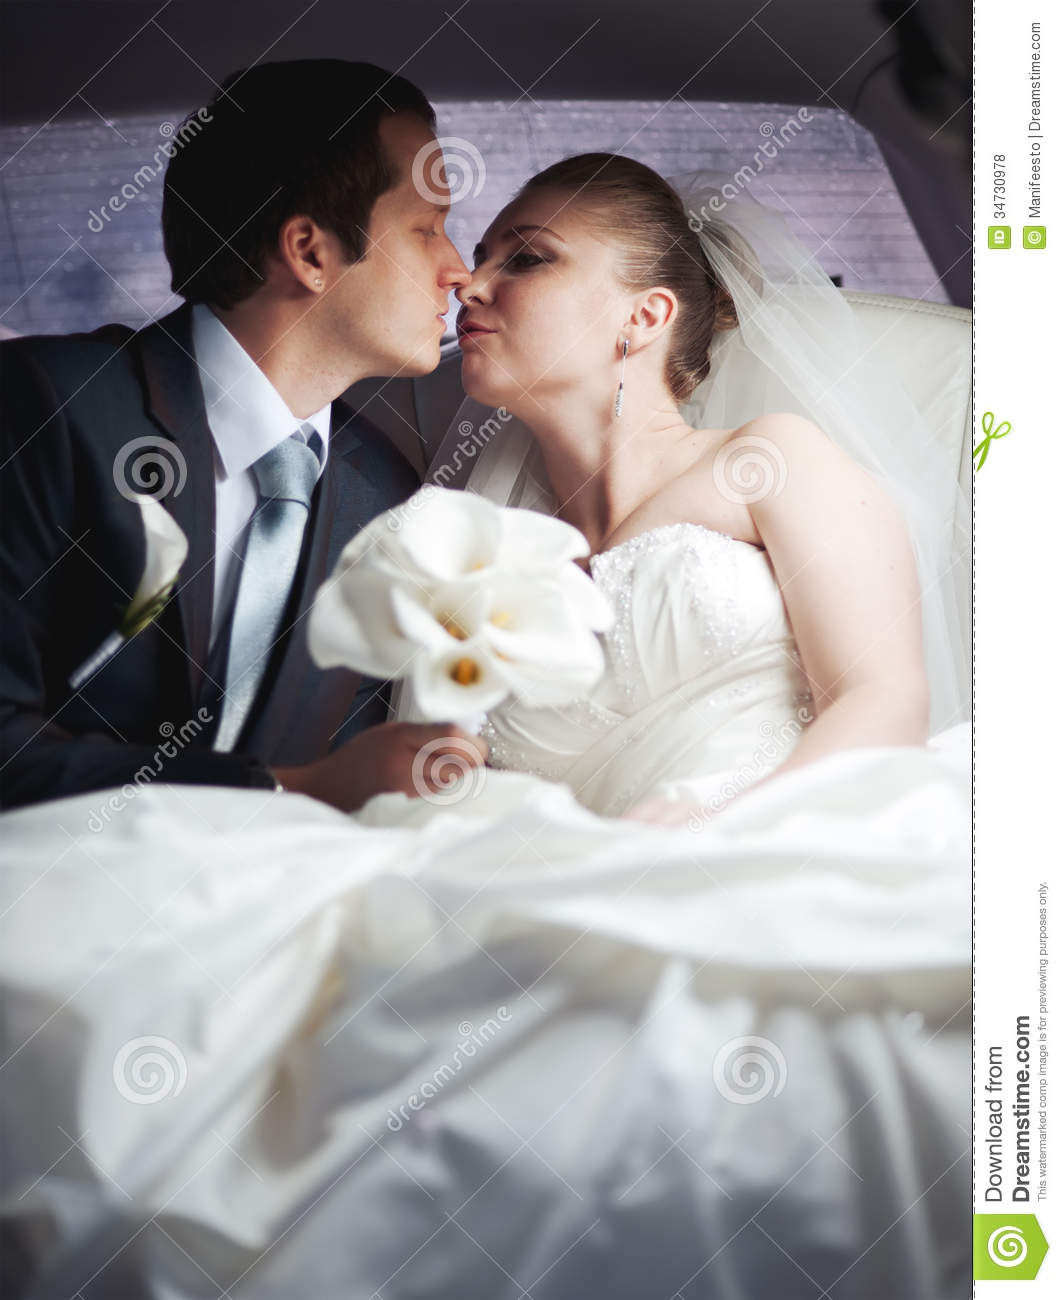 Newlywed young couple in limo kissing. wedding picture